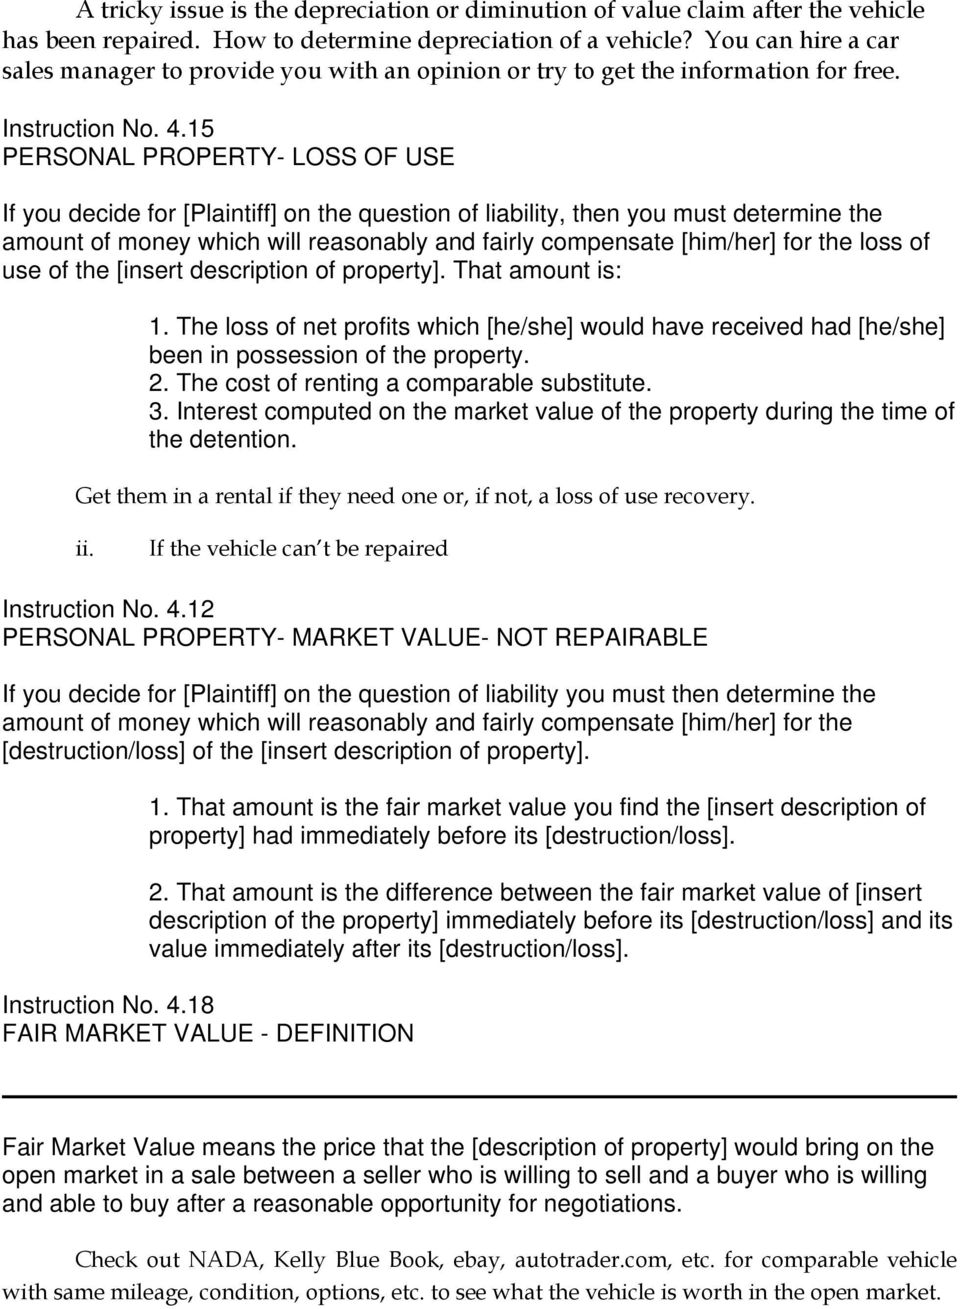 15 PERSONAL PROPERTY- LOSS OF USE If you decide for [Plaintiff] on the question of liability, then you must determine the amount of money which will reasonably and fairly compensate [him/her] for the